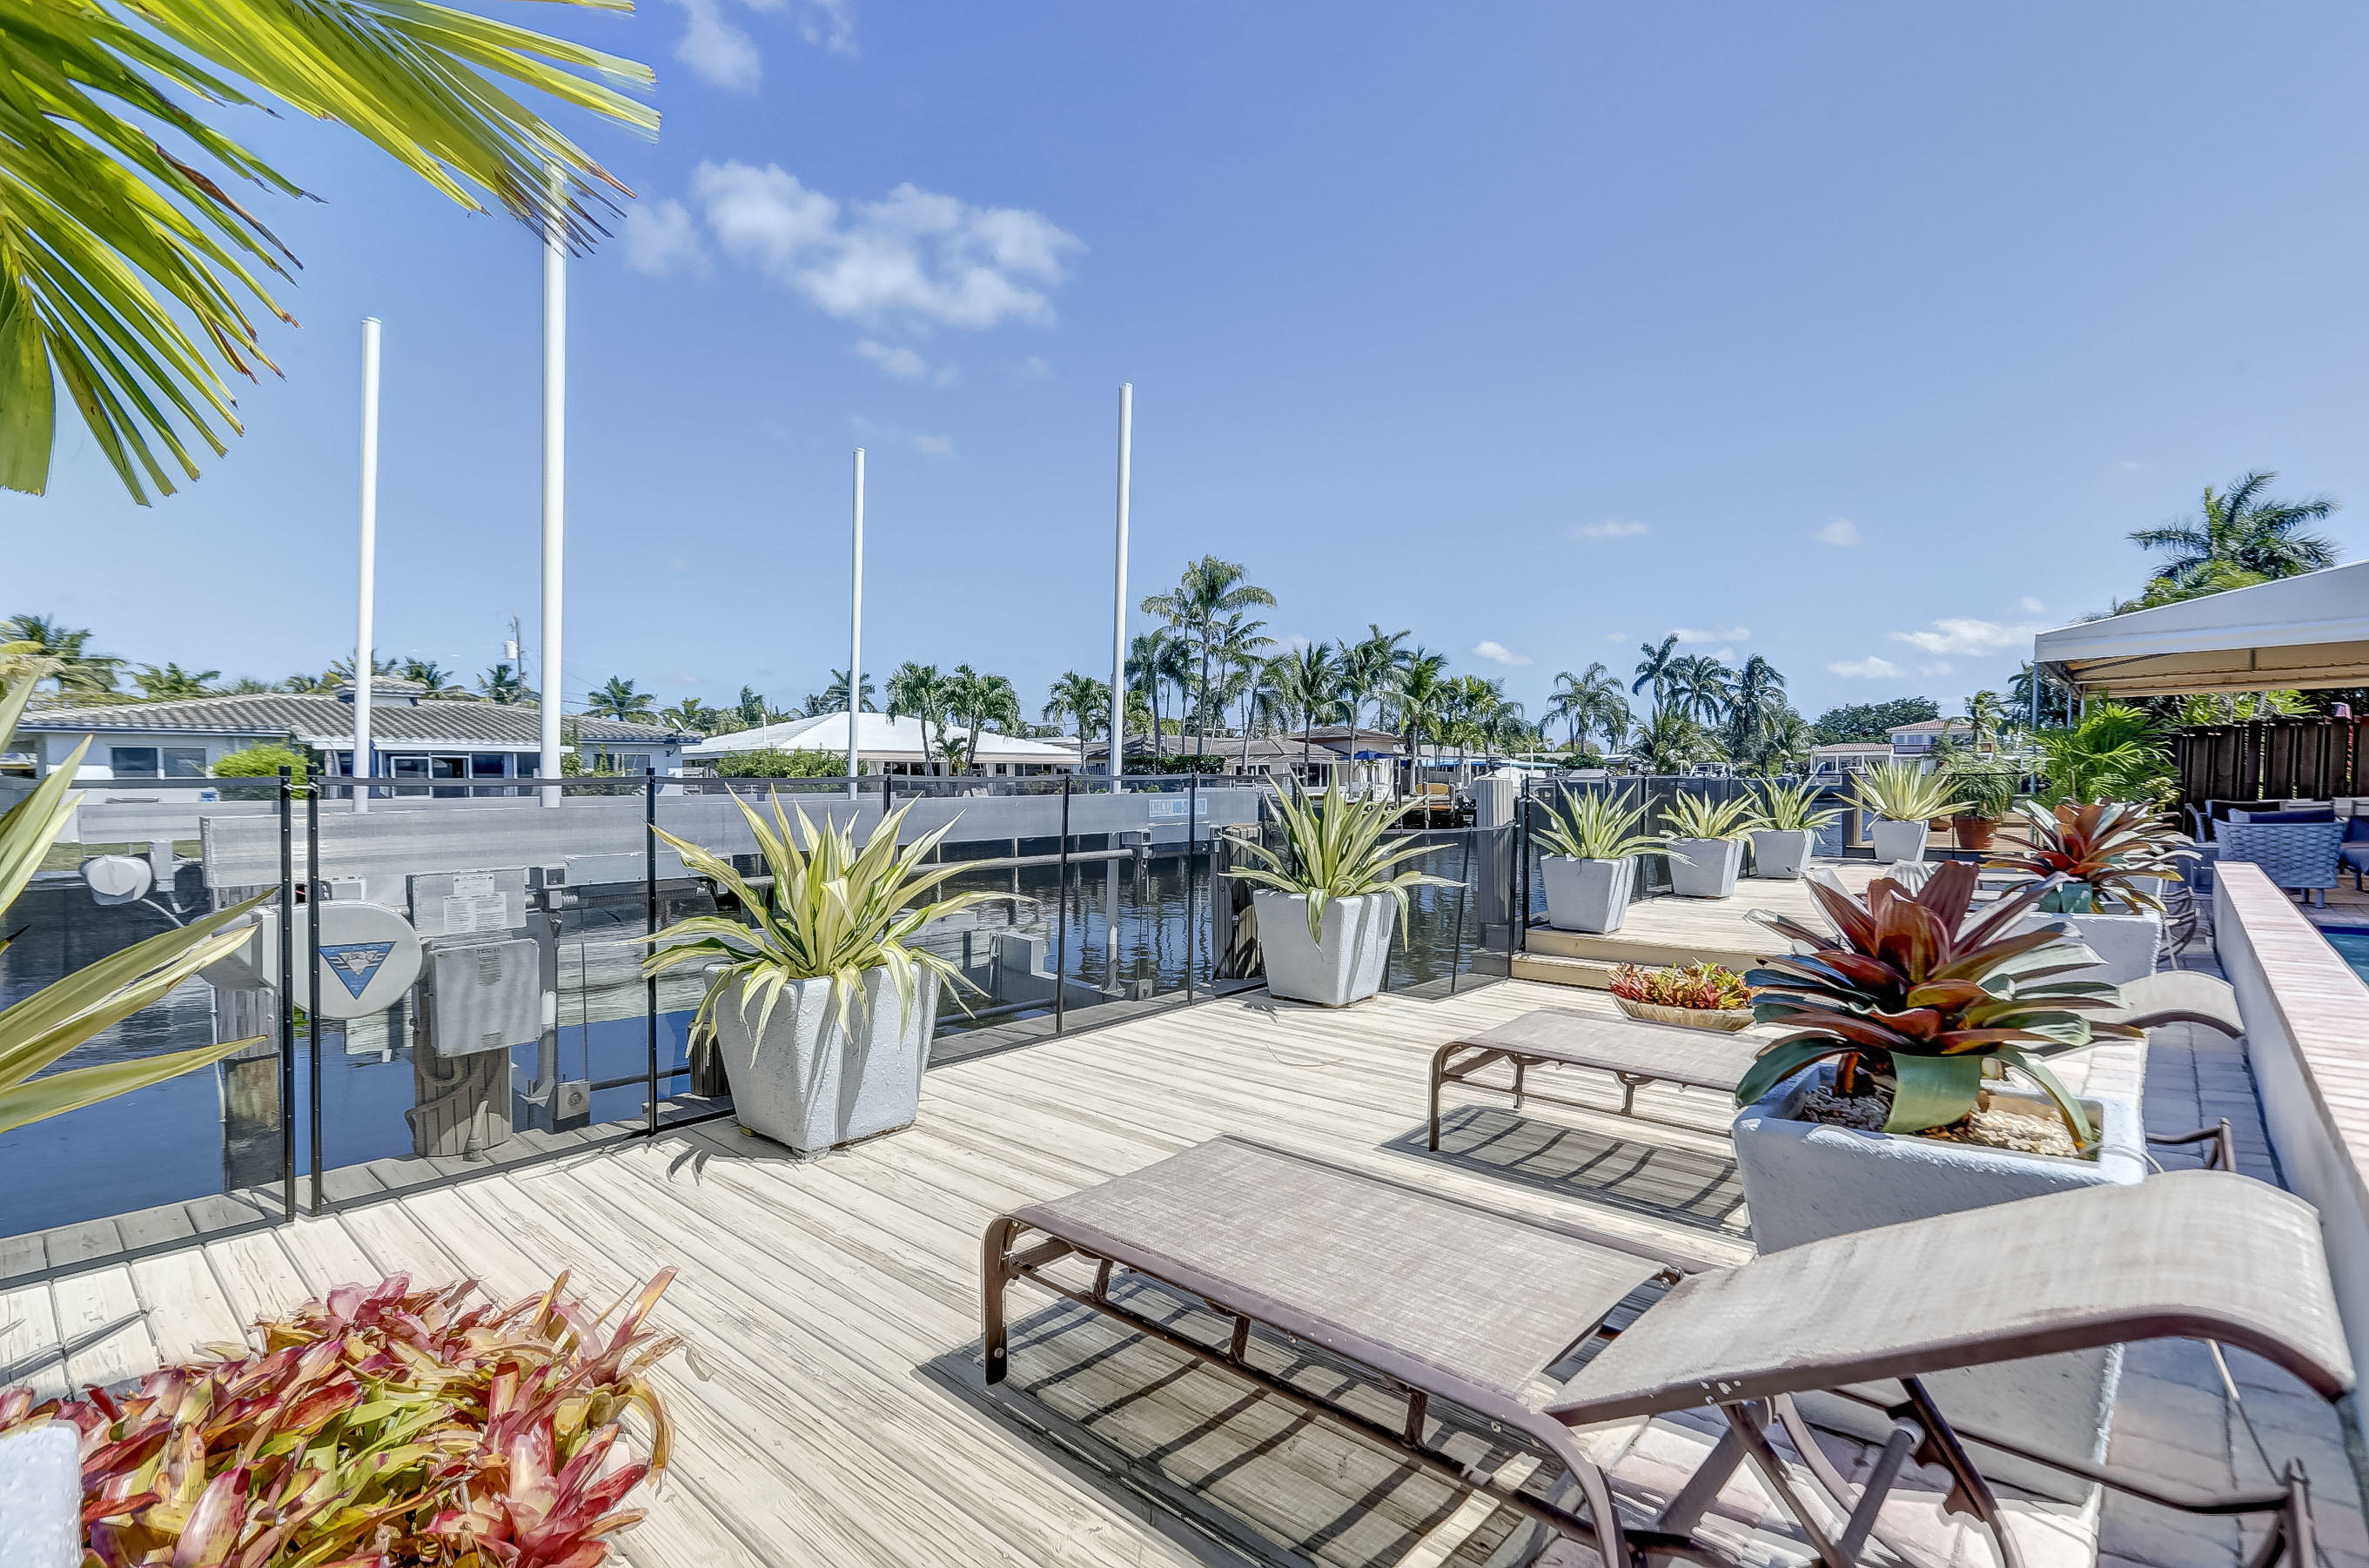 Plenty of Deck to Relax in Paradise